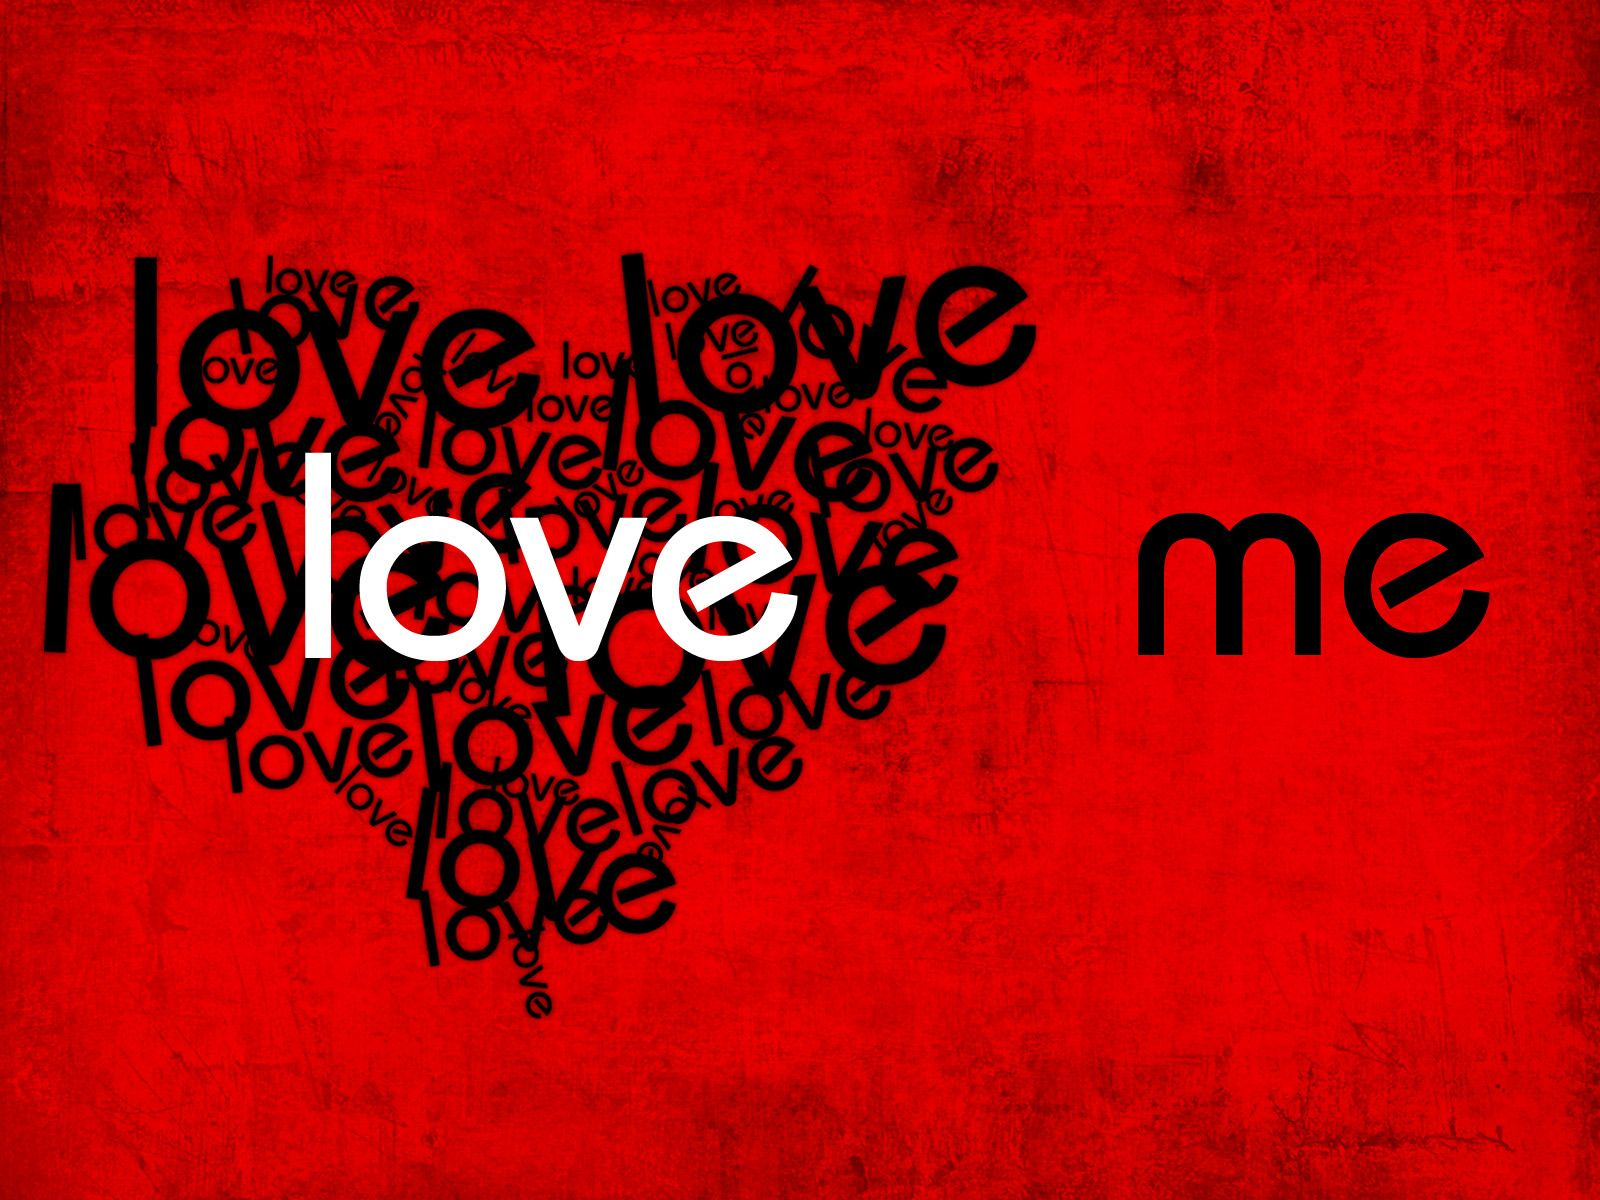 Wallpaper download in love - Love Wallpaper Download Propose